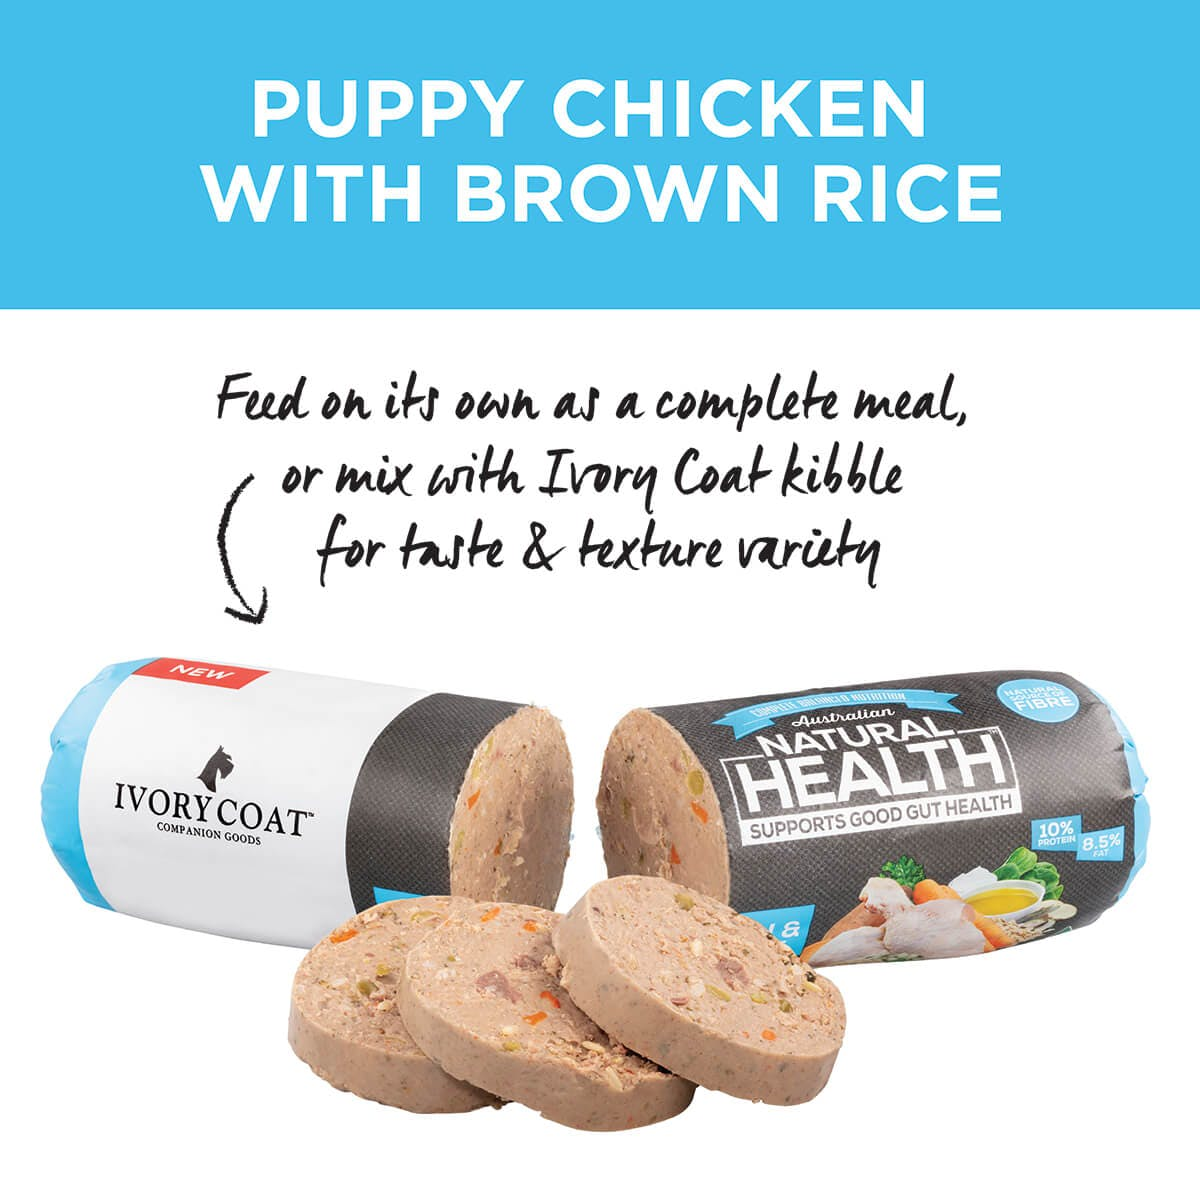 Ivory Coat | Chilled Puppy Chicken & Brown Rice 1.4kg | Chilled Dog Food | Top of pack